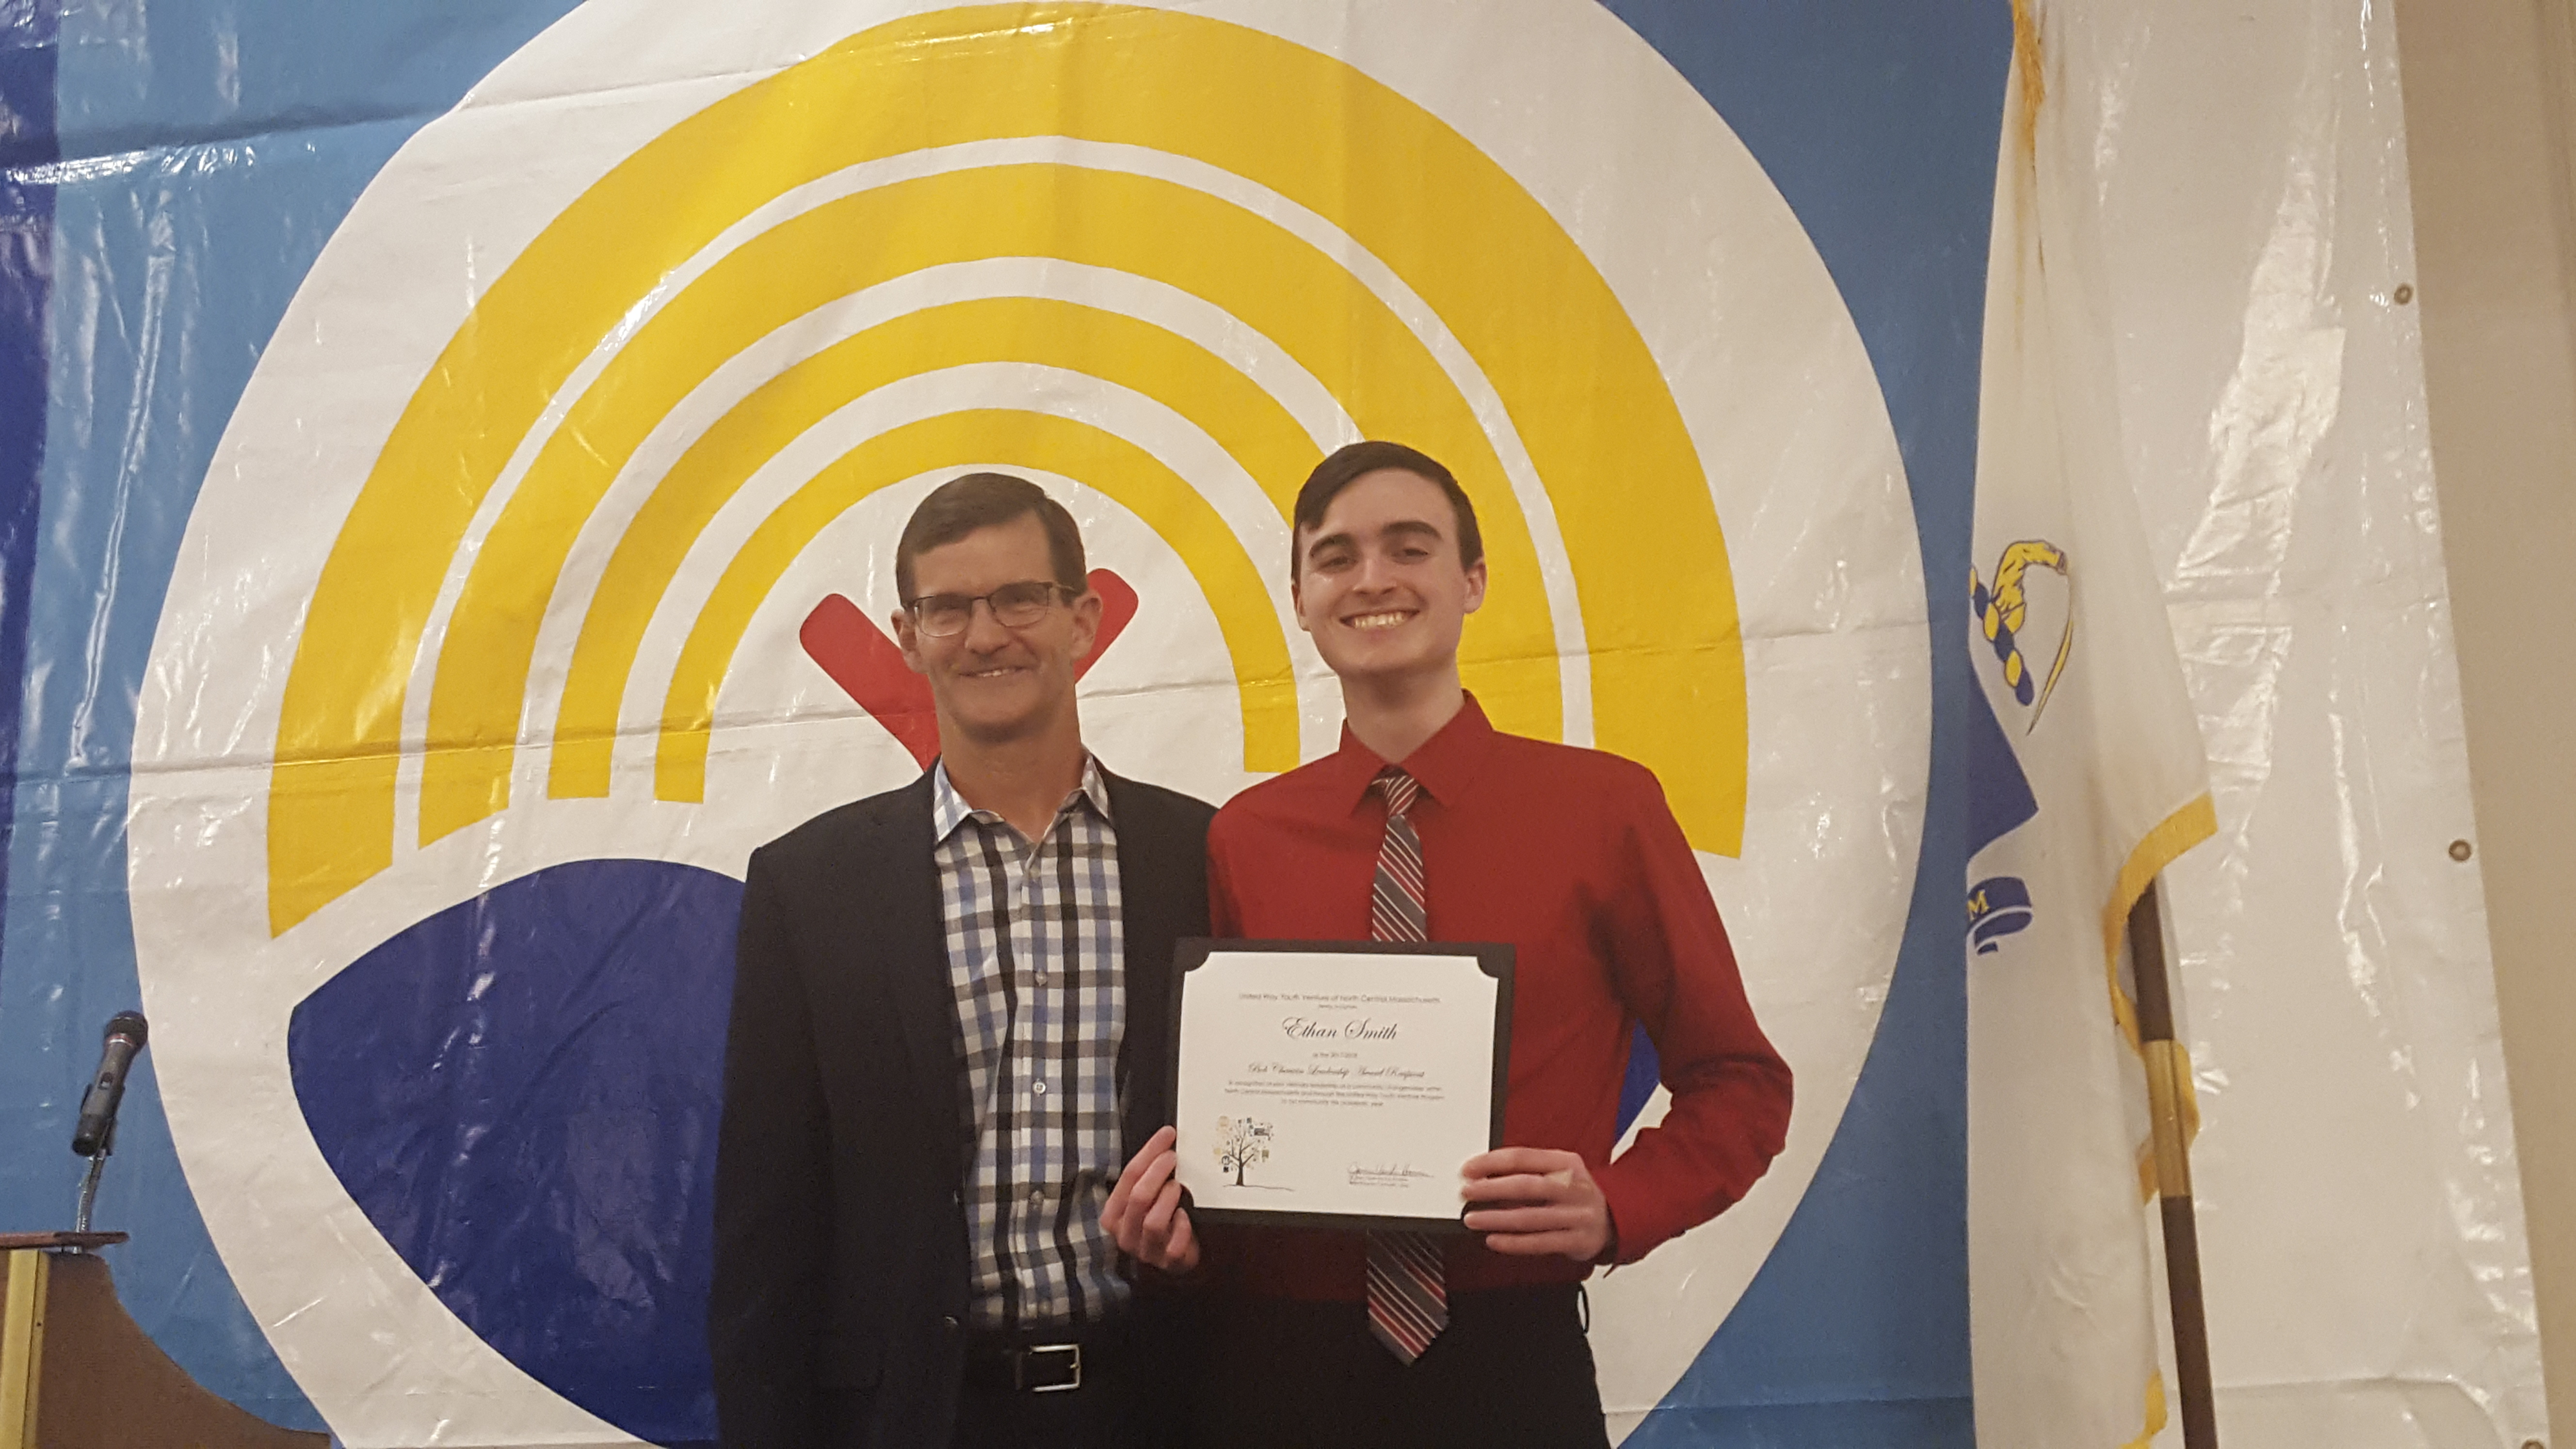 Ethan Smith with his scholarship certificate, with Bob Chauvin